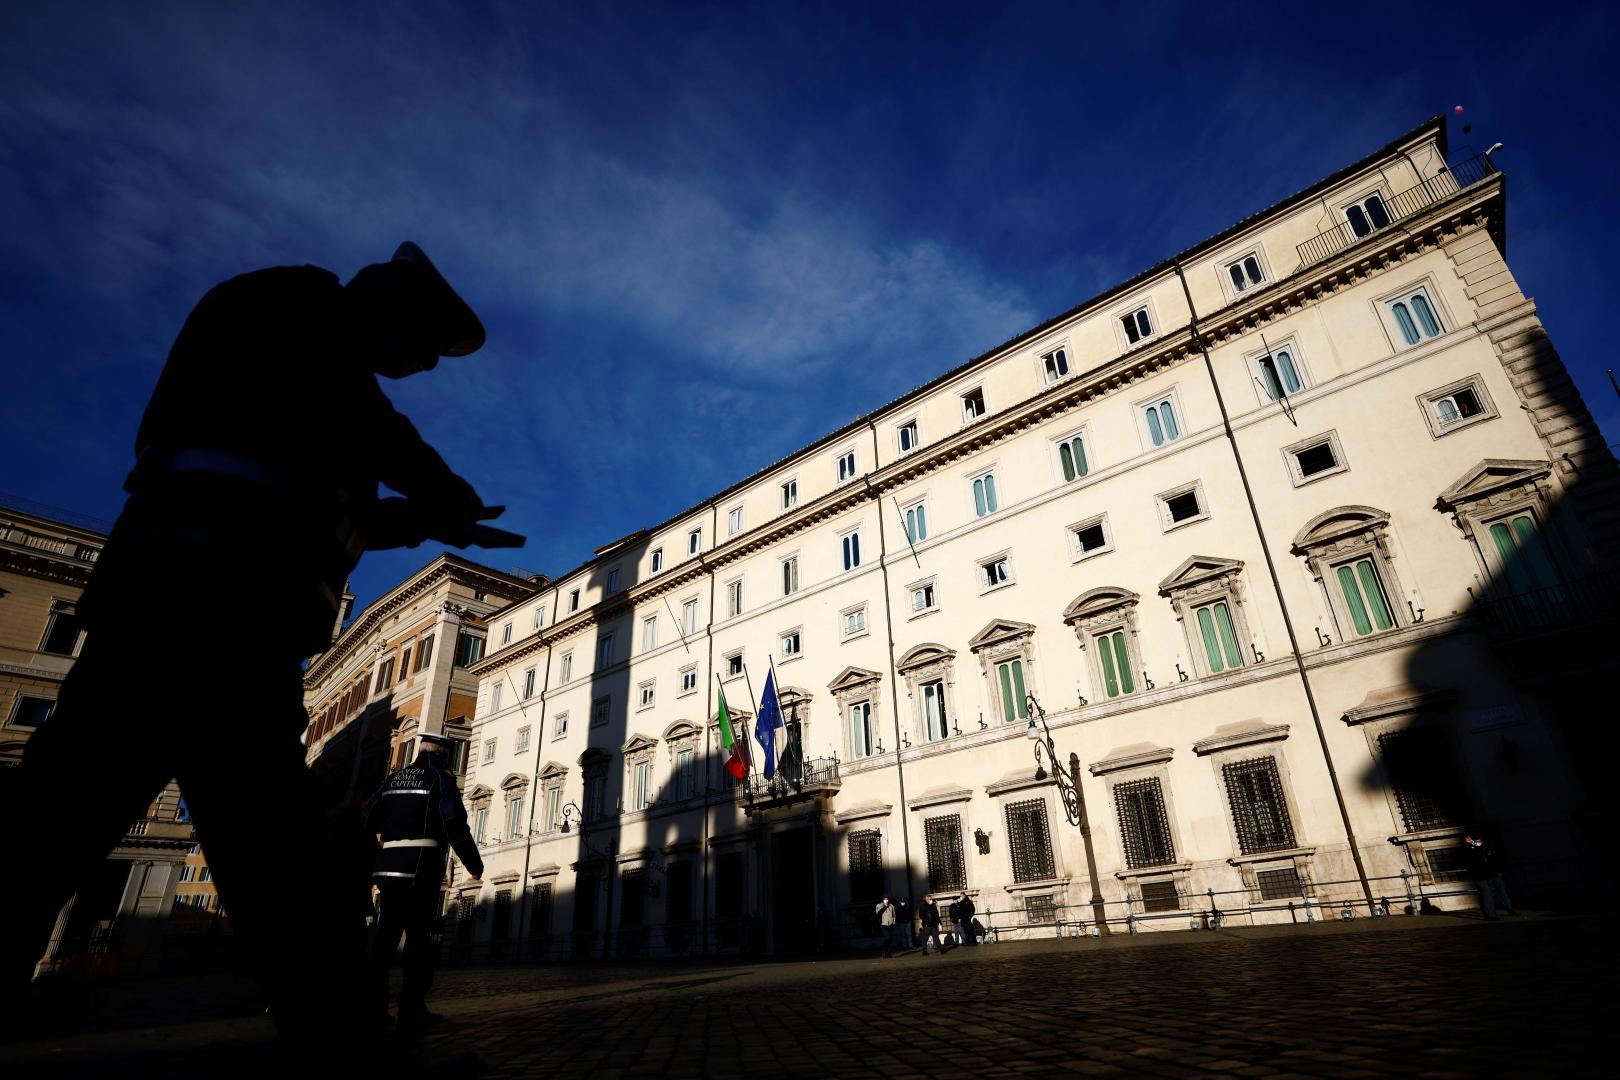 A general view of Chigi Palace, Italian prime minister's office, in Rome, Italy, January 13, 2021. REUTERS/Guglielmo Mangiapane